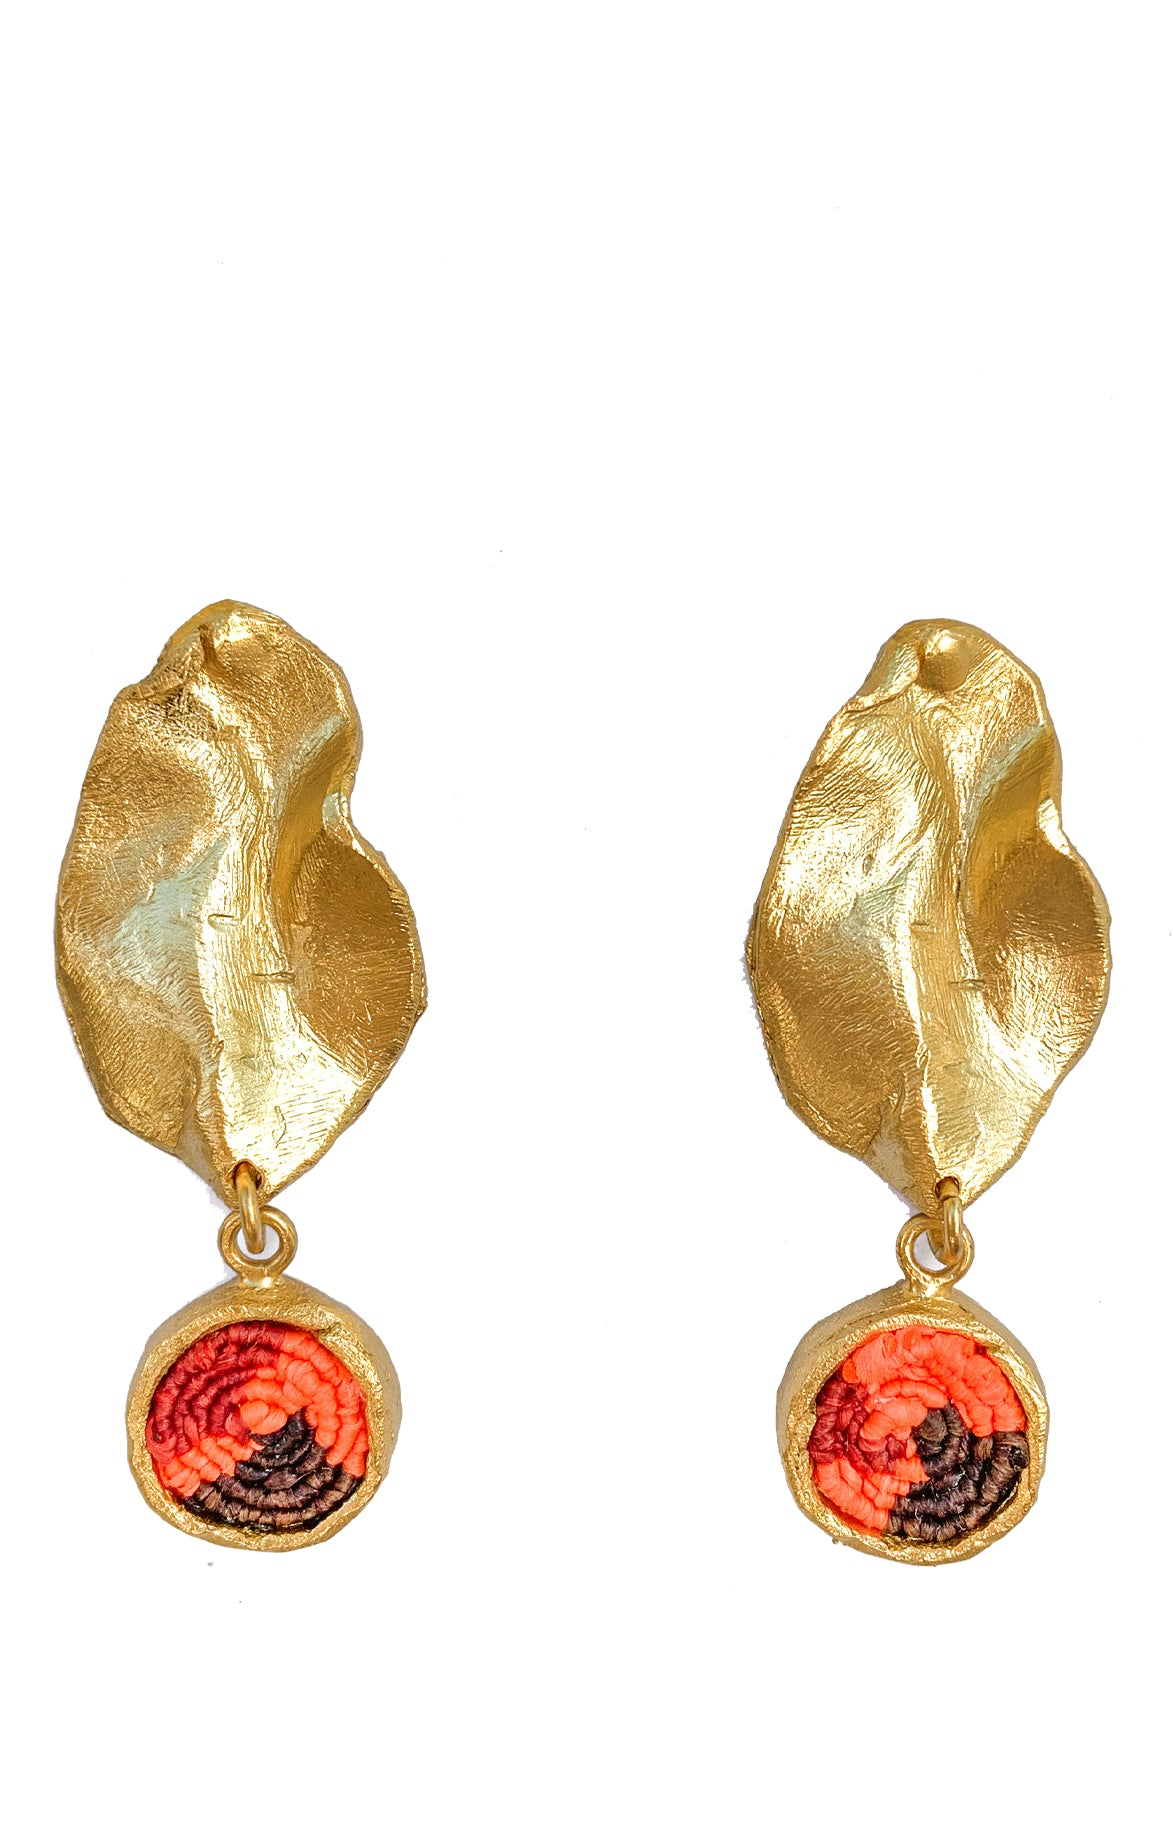 Curaca Earrings